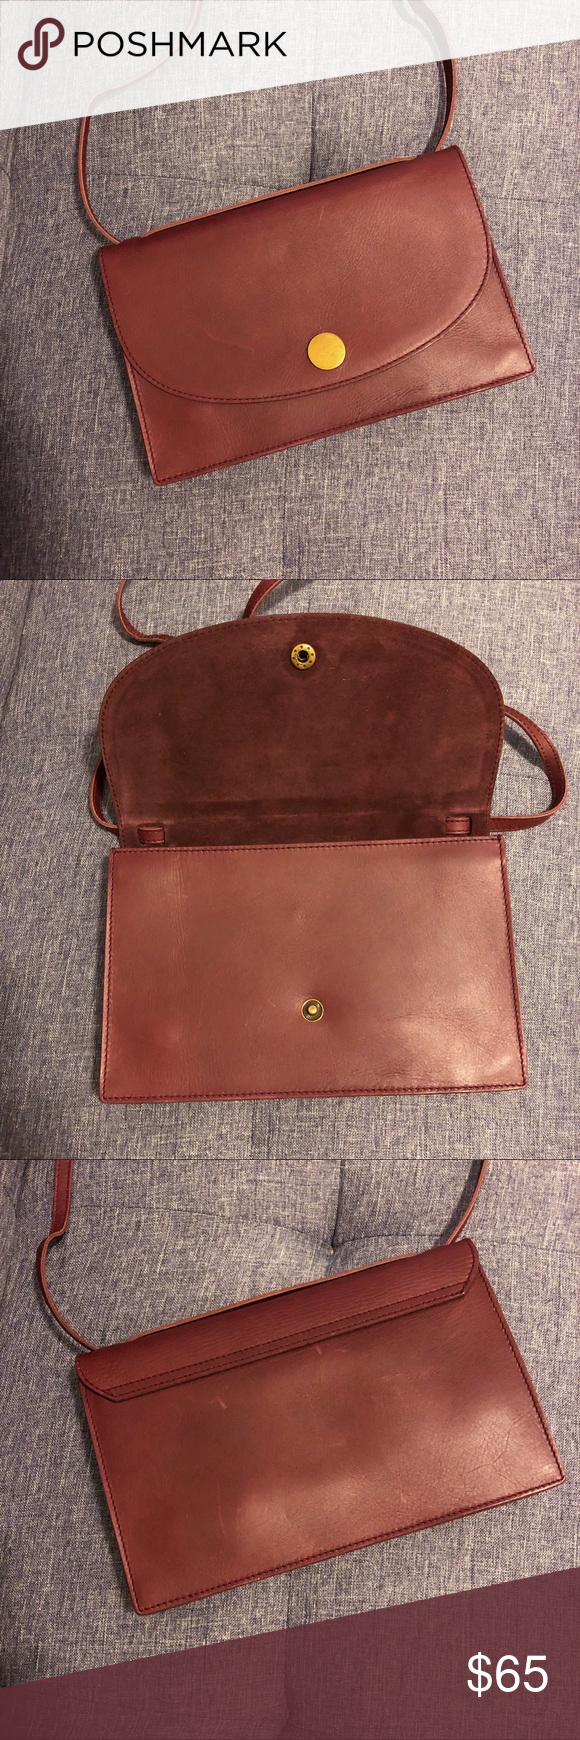 8ce6699743c2 Madewell Slim Convertible Bag - Dark Cabernet This bag can be worn  crossbody or doubled up